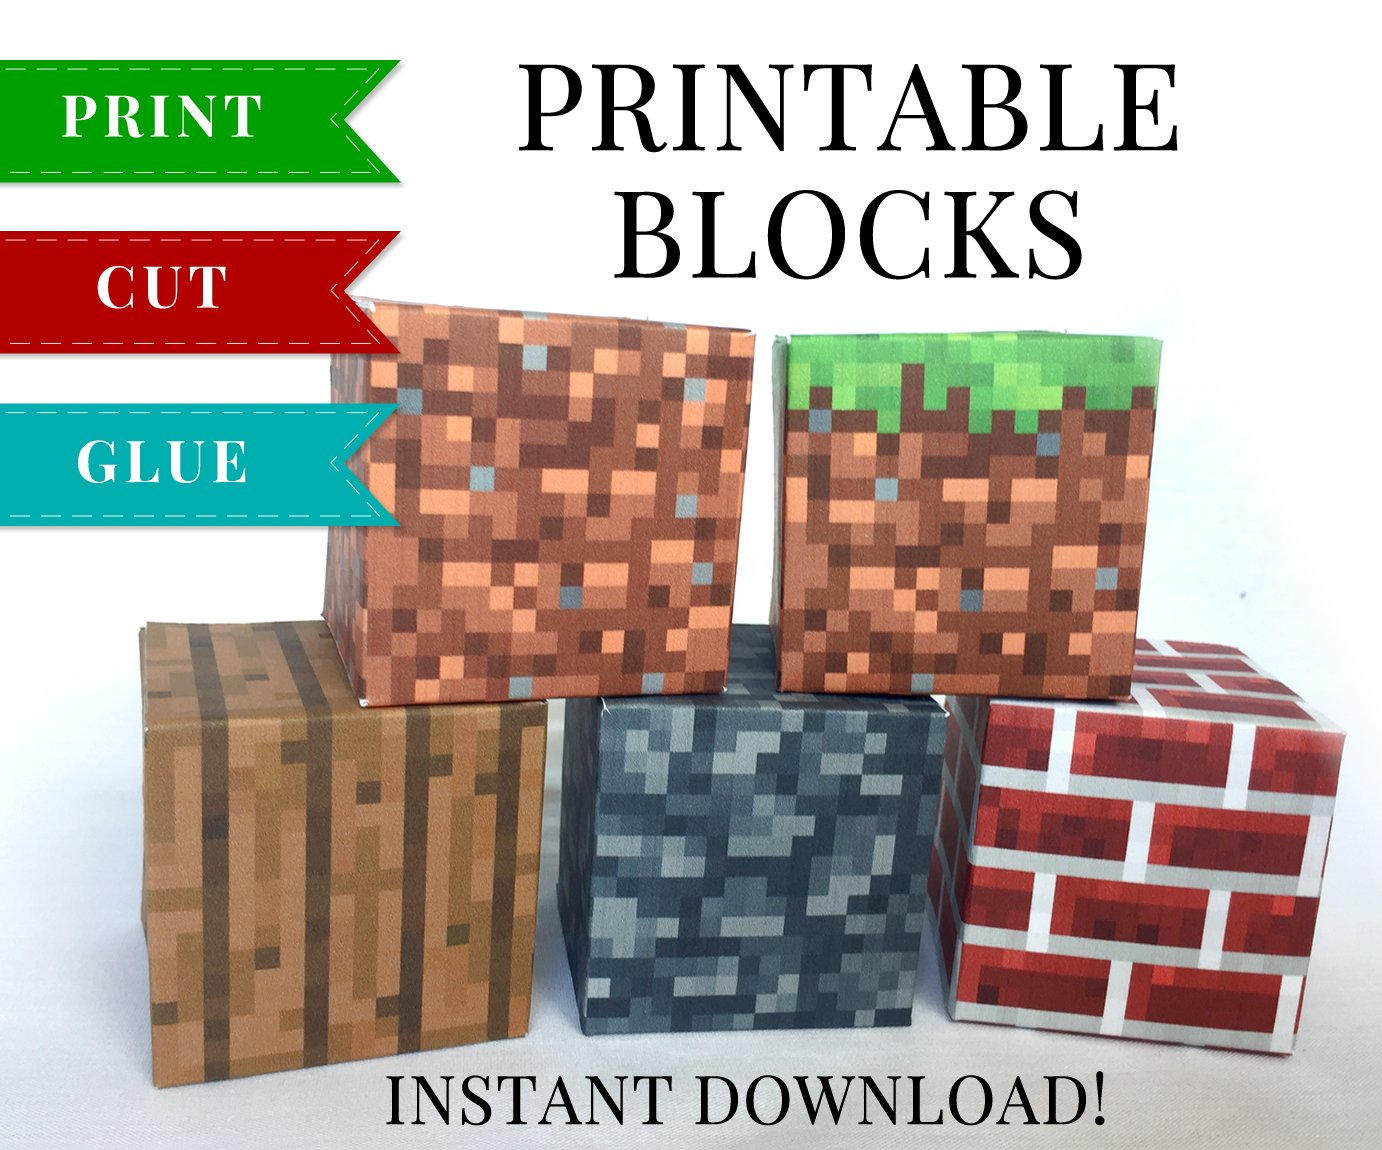 It's just an image of Ridiculous Minecraft Papercraft Printable